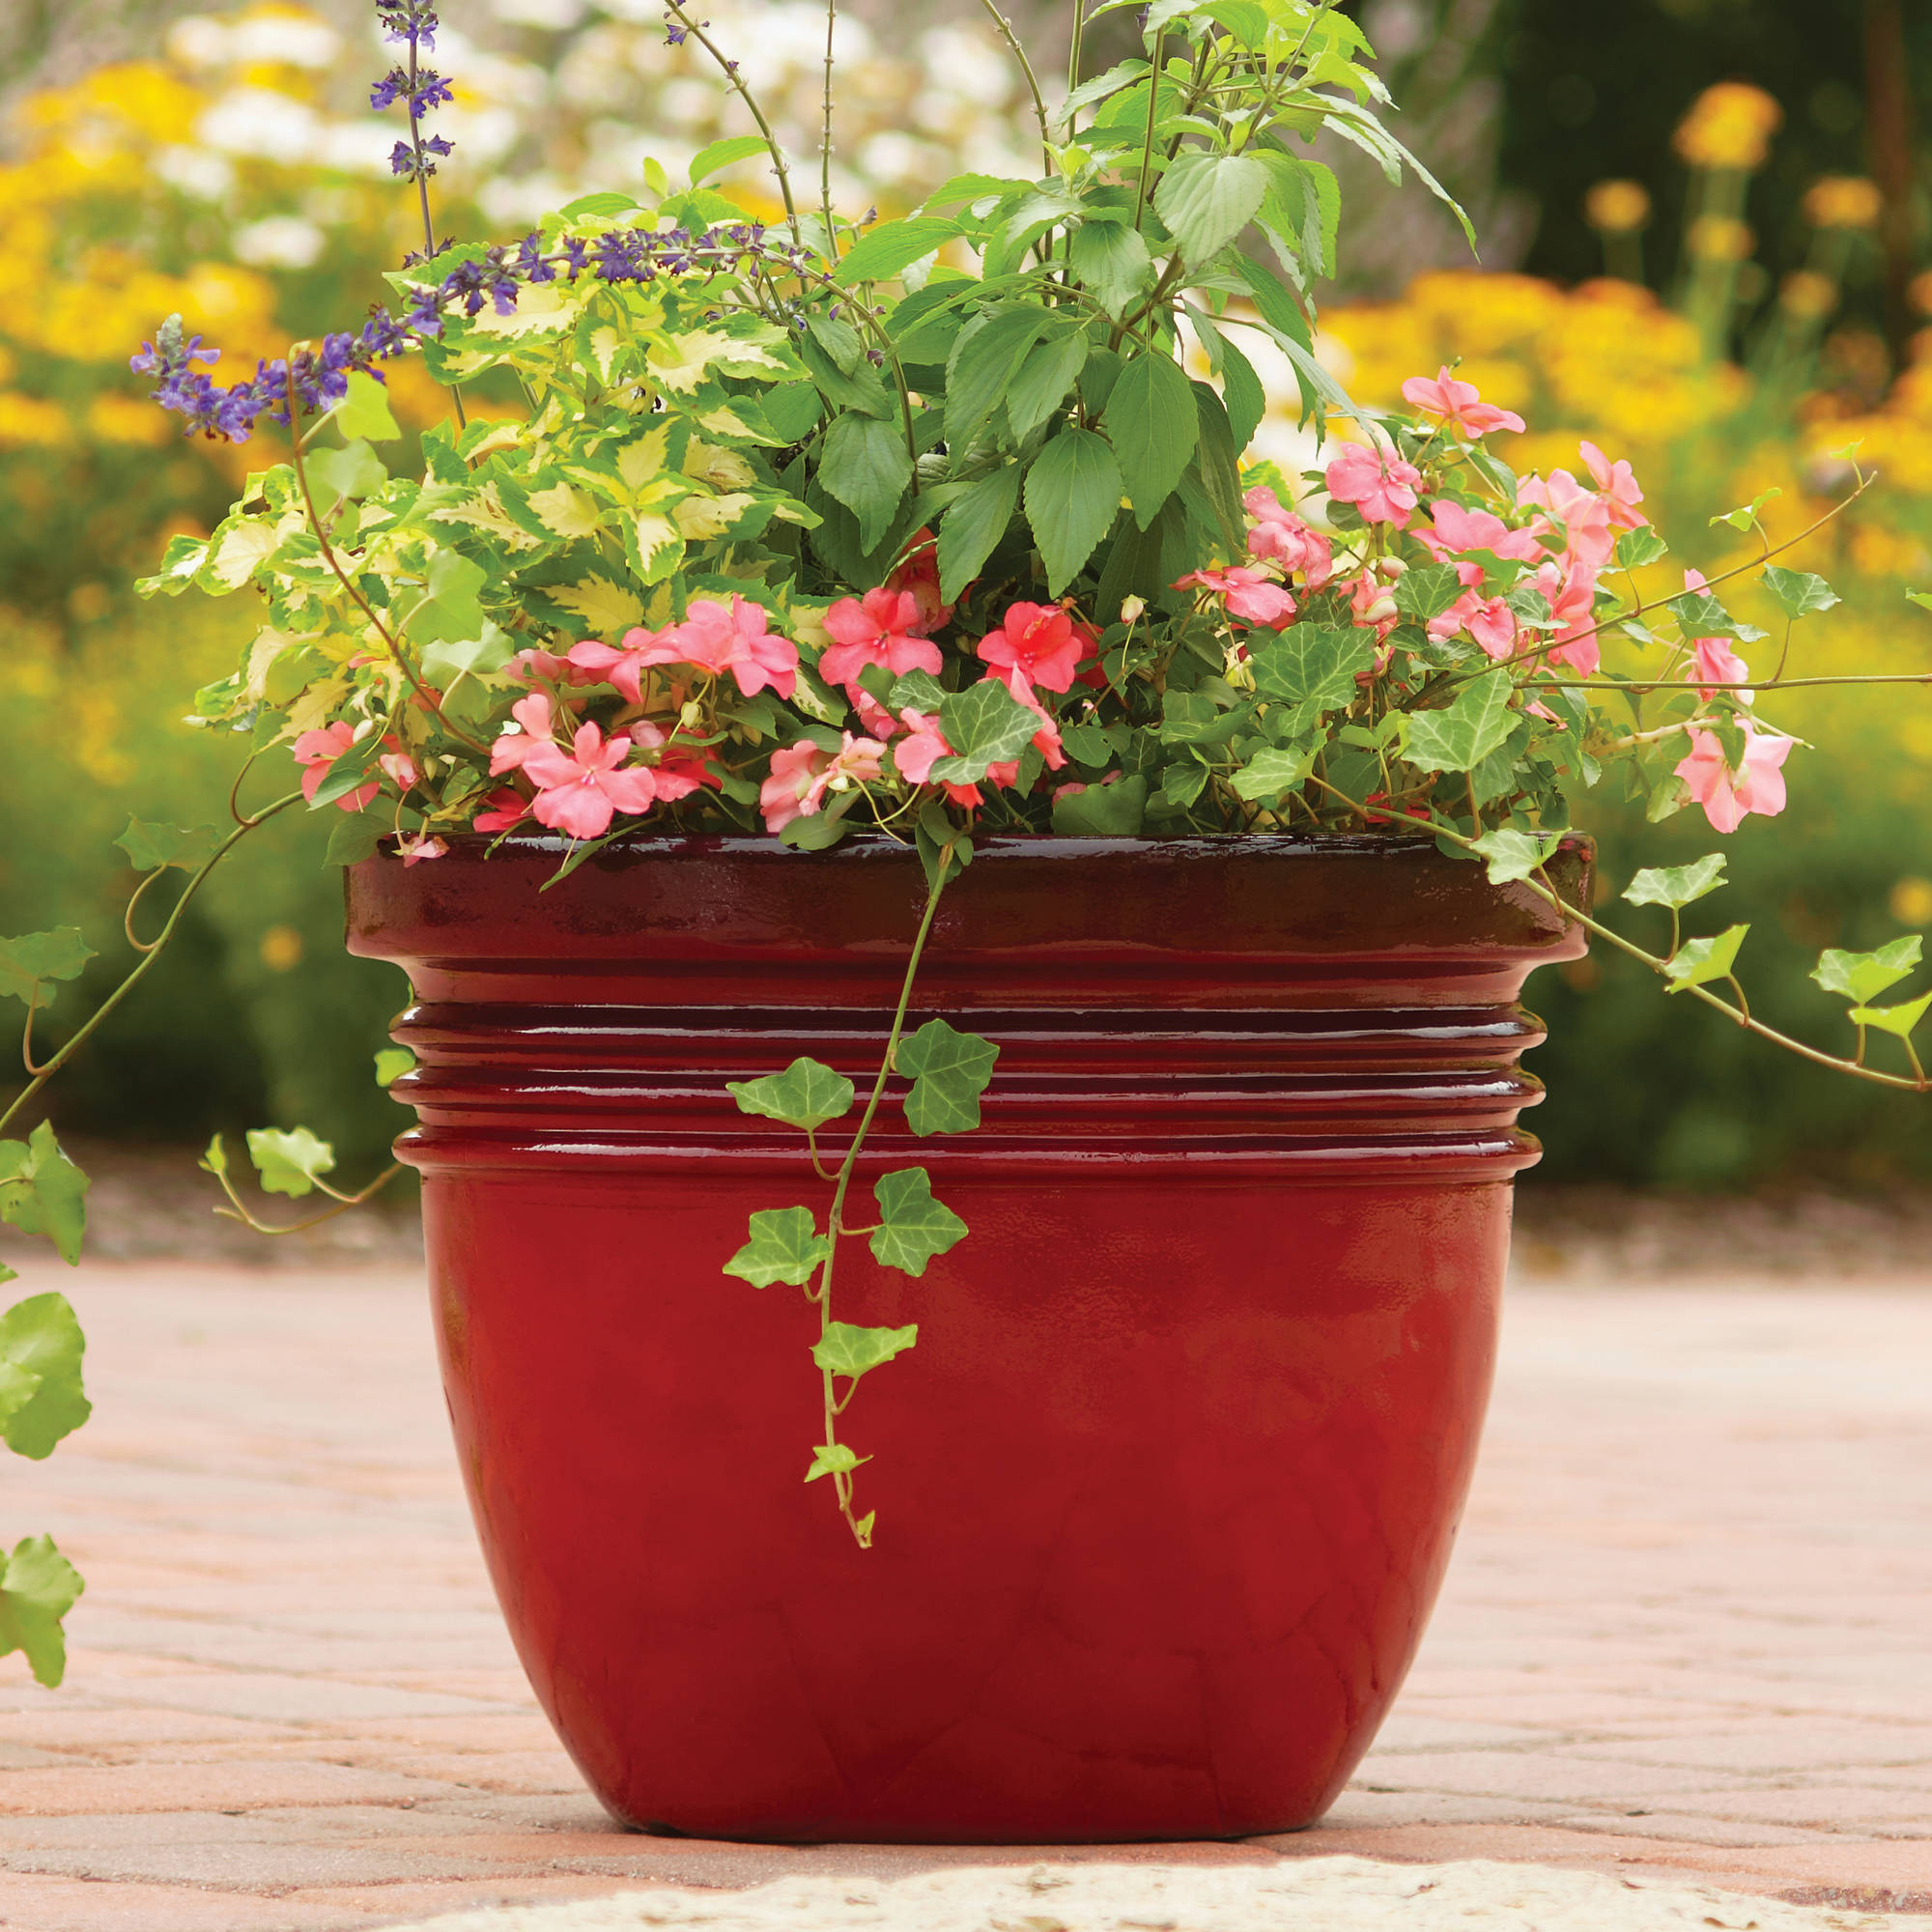 Better Homes And Gardens Ay Decorative Outdoor Planter Red Sedona 16